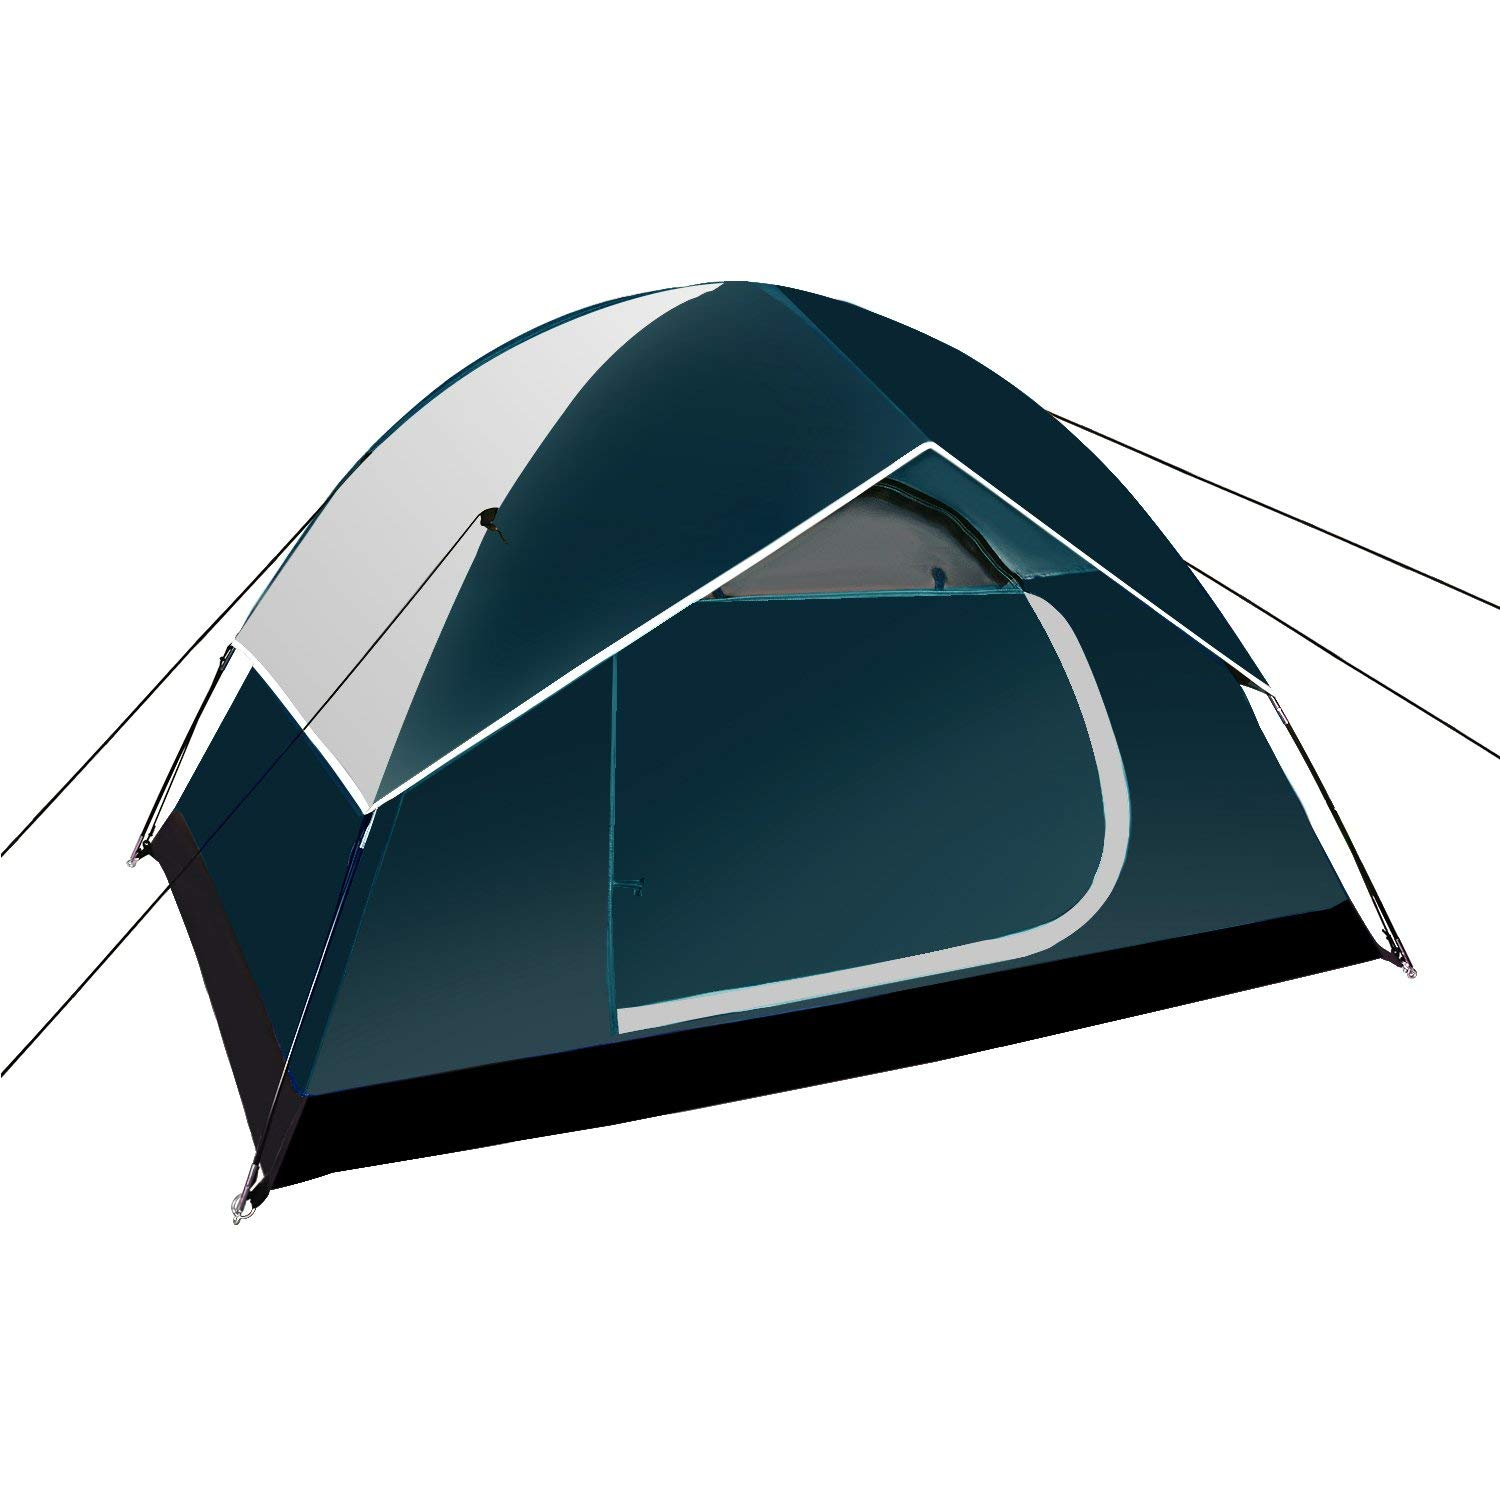 Neewer Backpacking Tents Outdoor Sports Tent - Compact Lightweight 2 to 3 person Pop-up Shelter for Camping Hiking Beach Park Mountain Area with Zippered Carrying Bag, 83x59x47 inches(Dark Blue/Gray) [並行輸入品] B07R4WPJL5